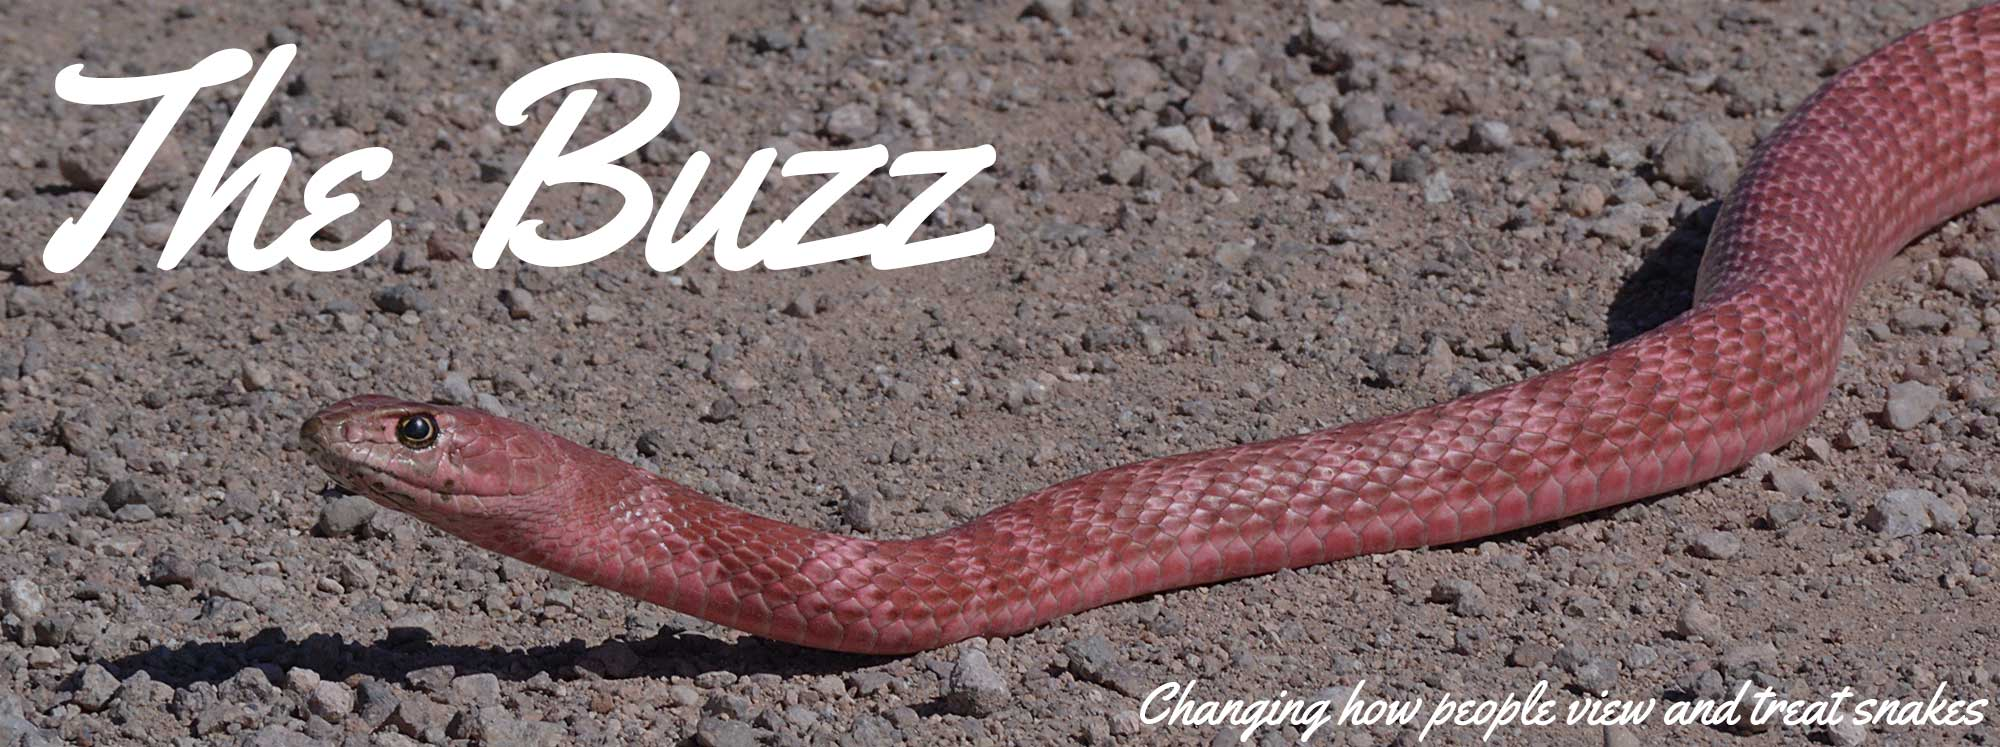 The Buzz: changing how people view and treat snakes